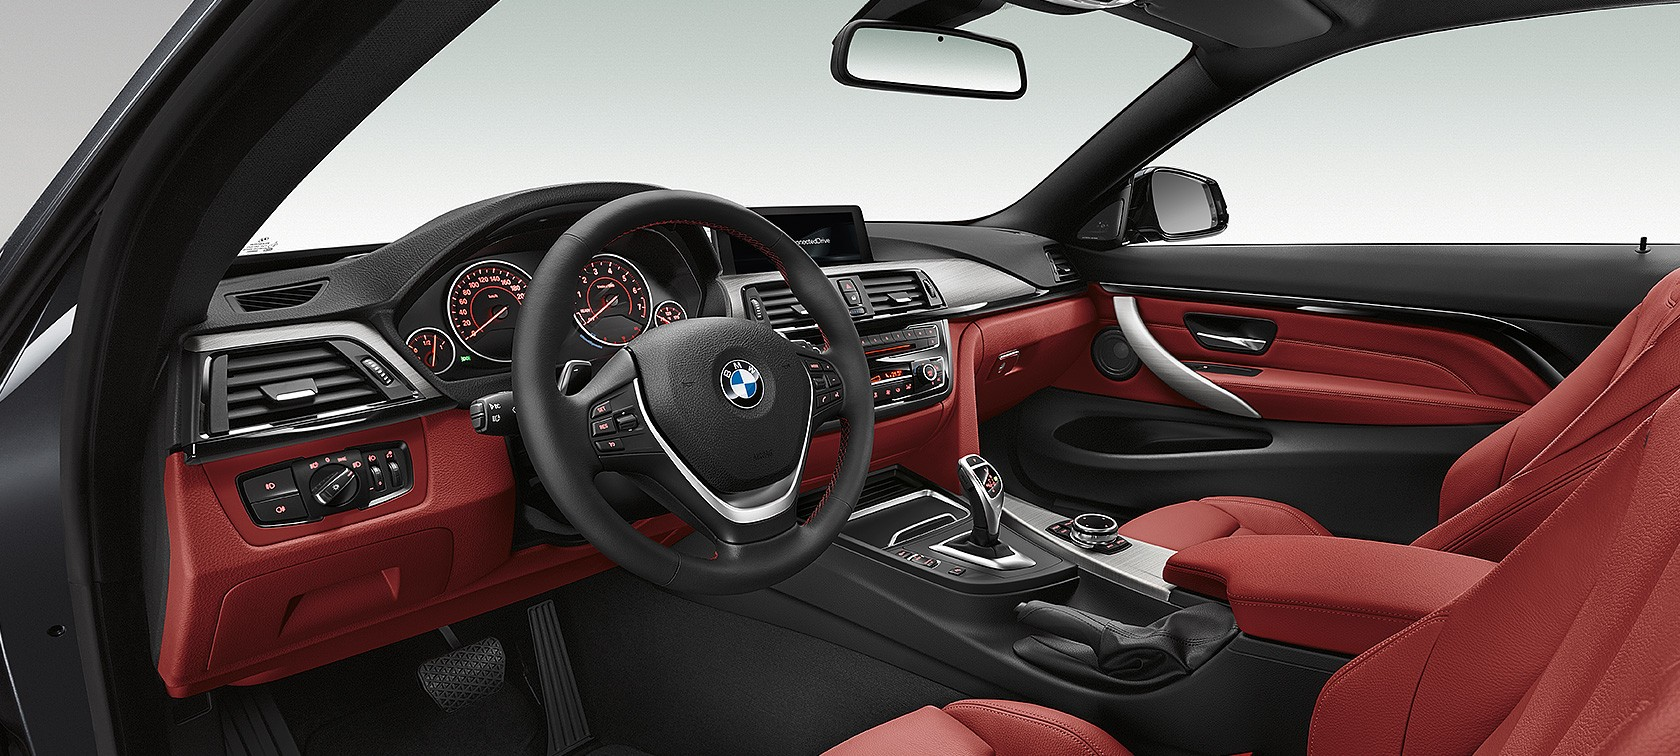 BMW Series Coupé Interior Design - Bmw 4 series interior